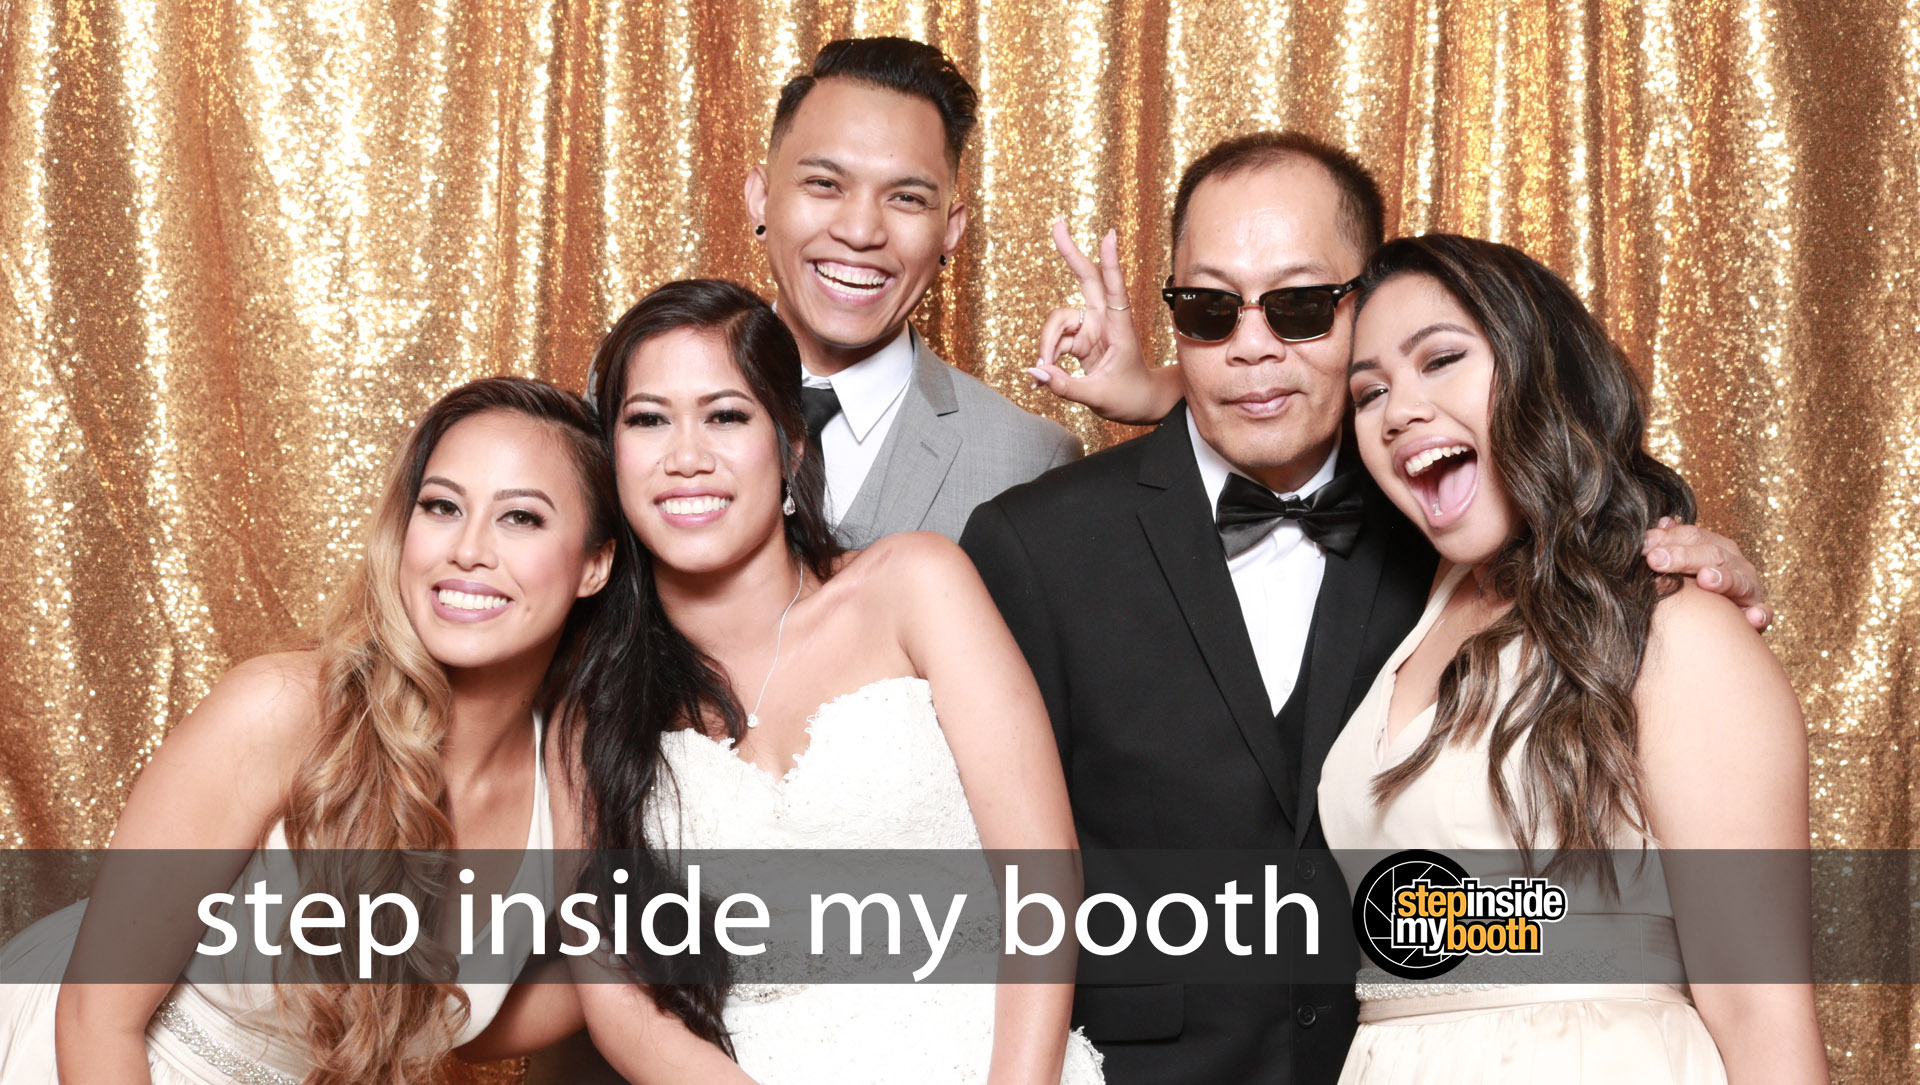 Step Inside My Booth - Kaycee and Guerard Wedding - Sept 2, 2018